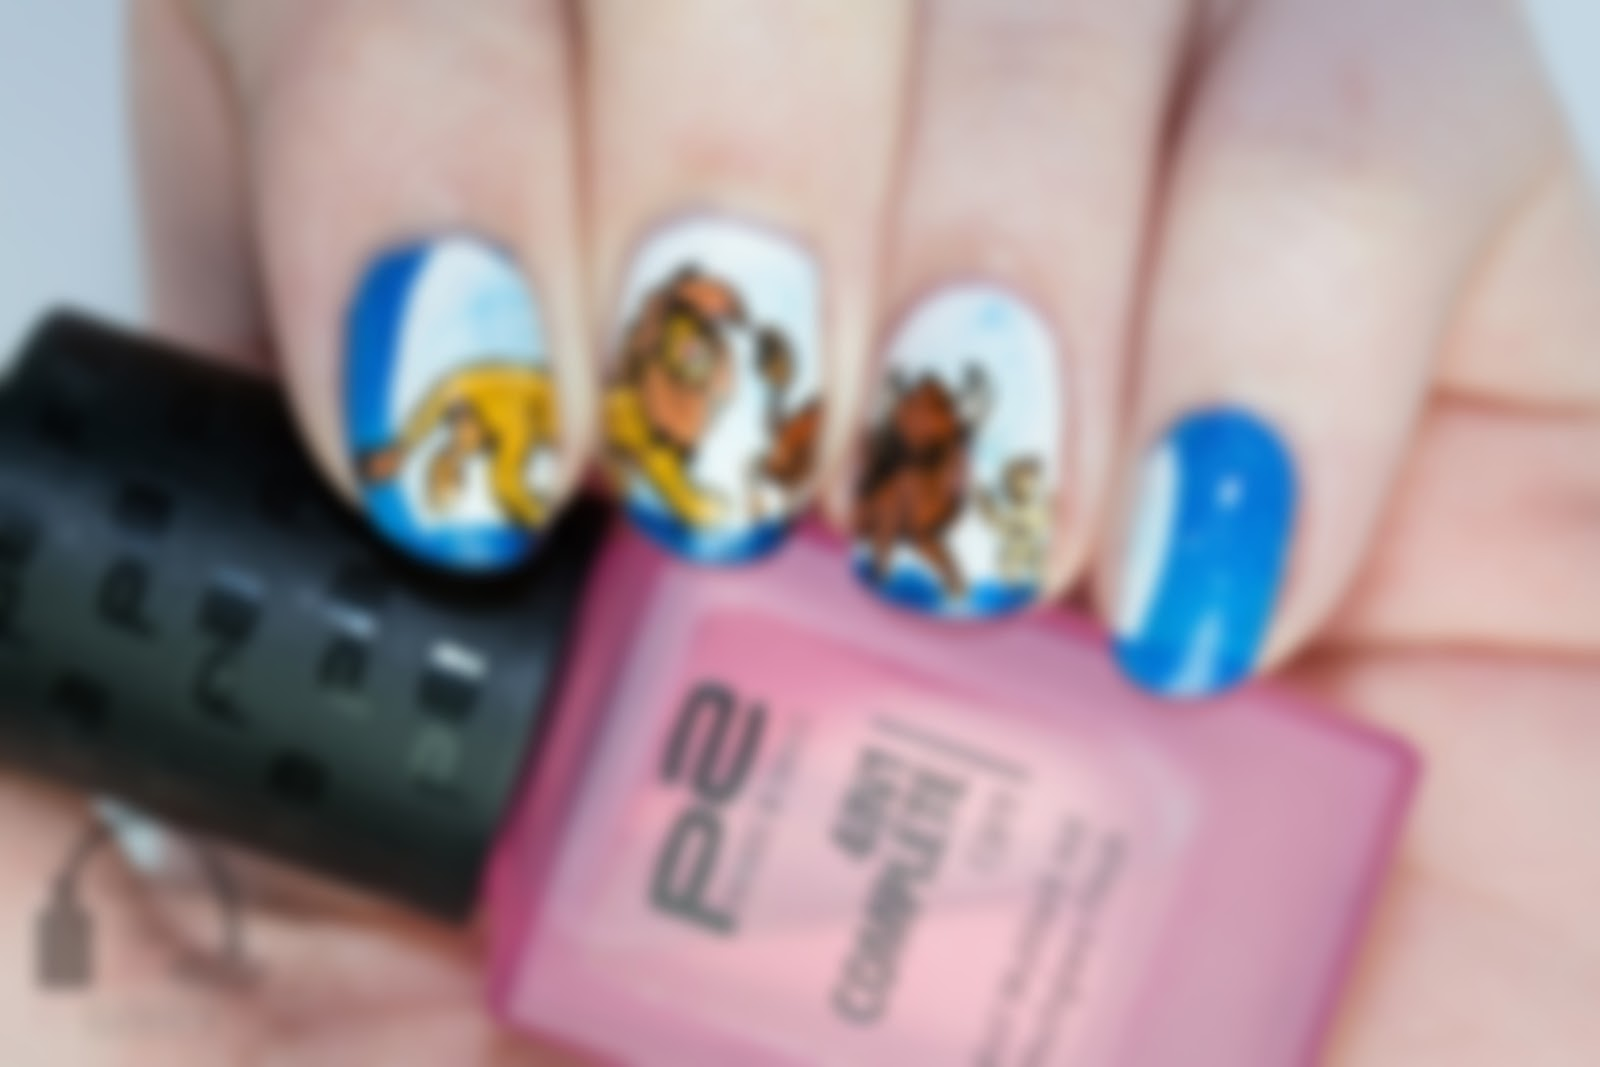 http://rainpow-nails.blogspot.com/2014/05/disney-week-der-konig-der-lowen.html